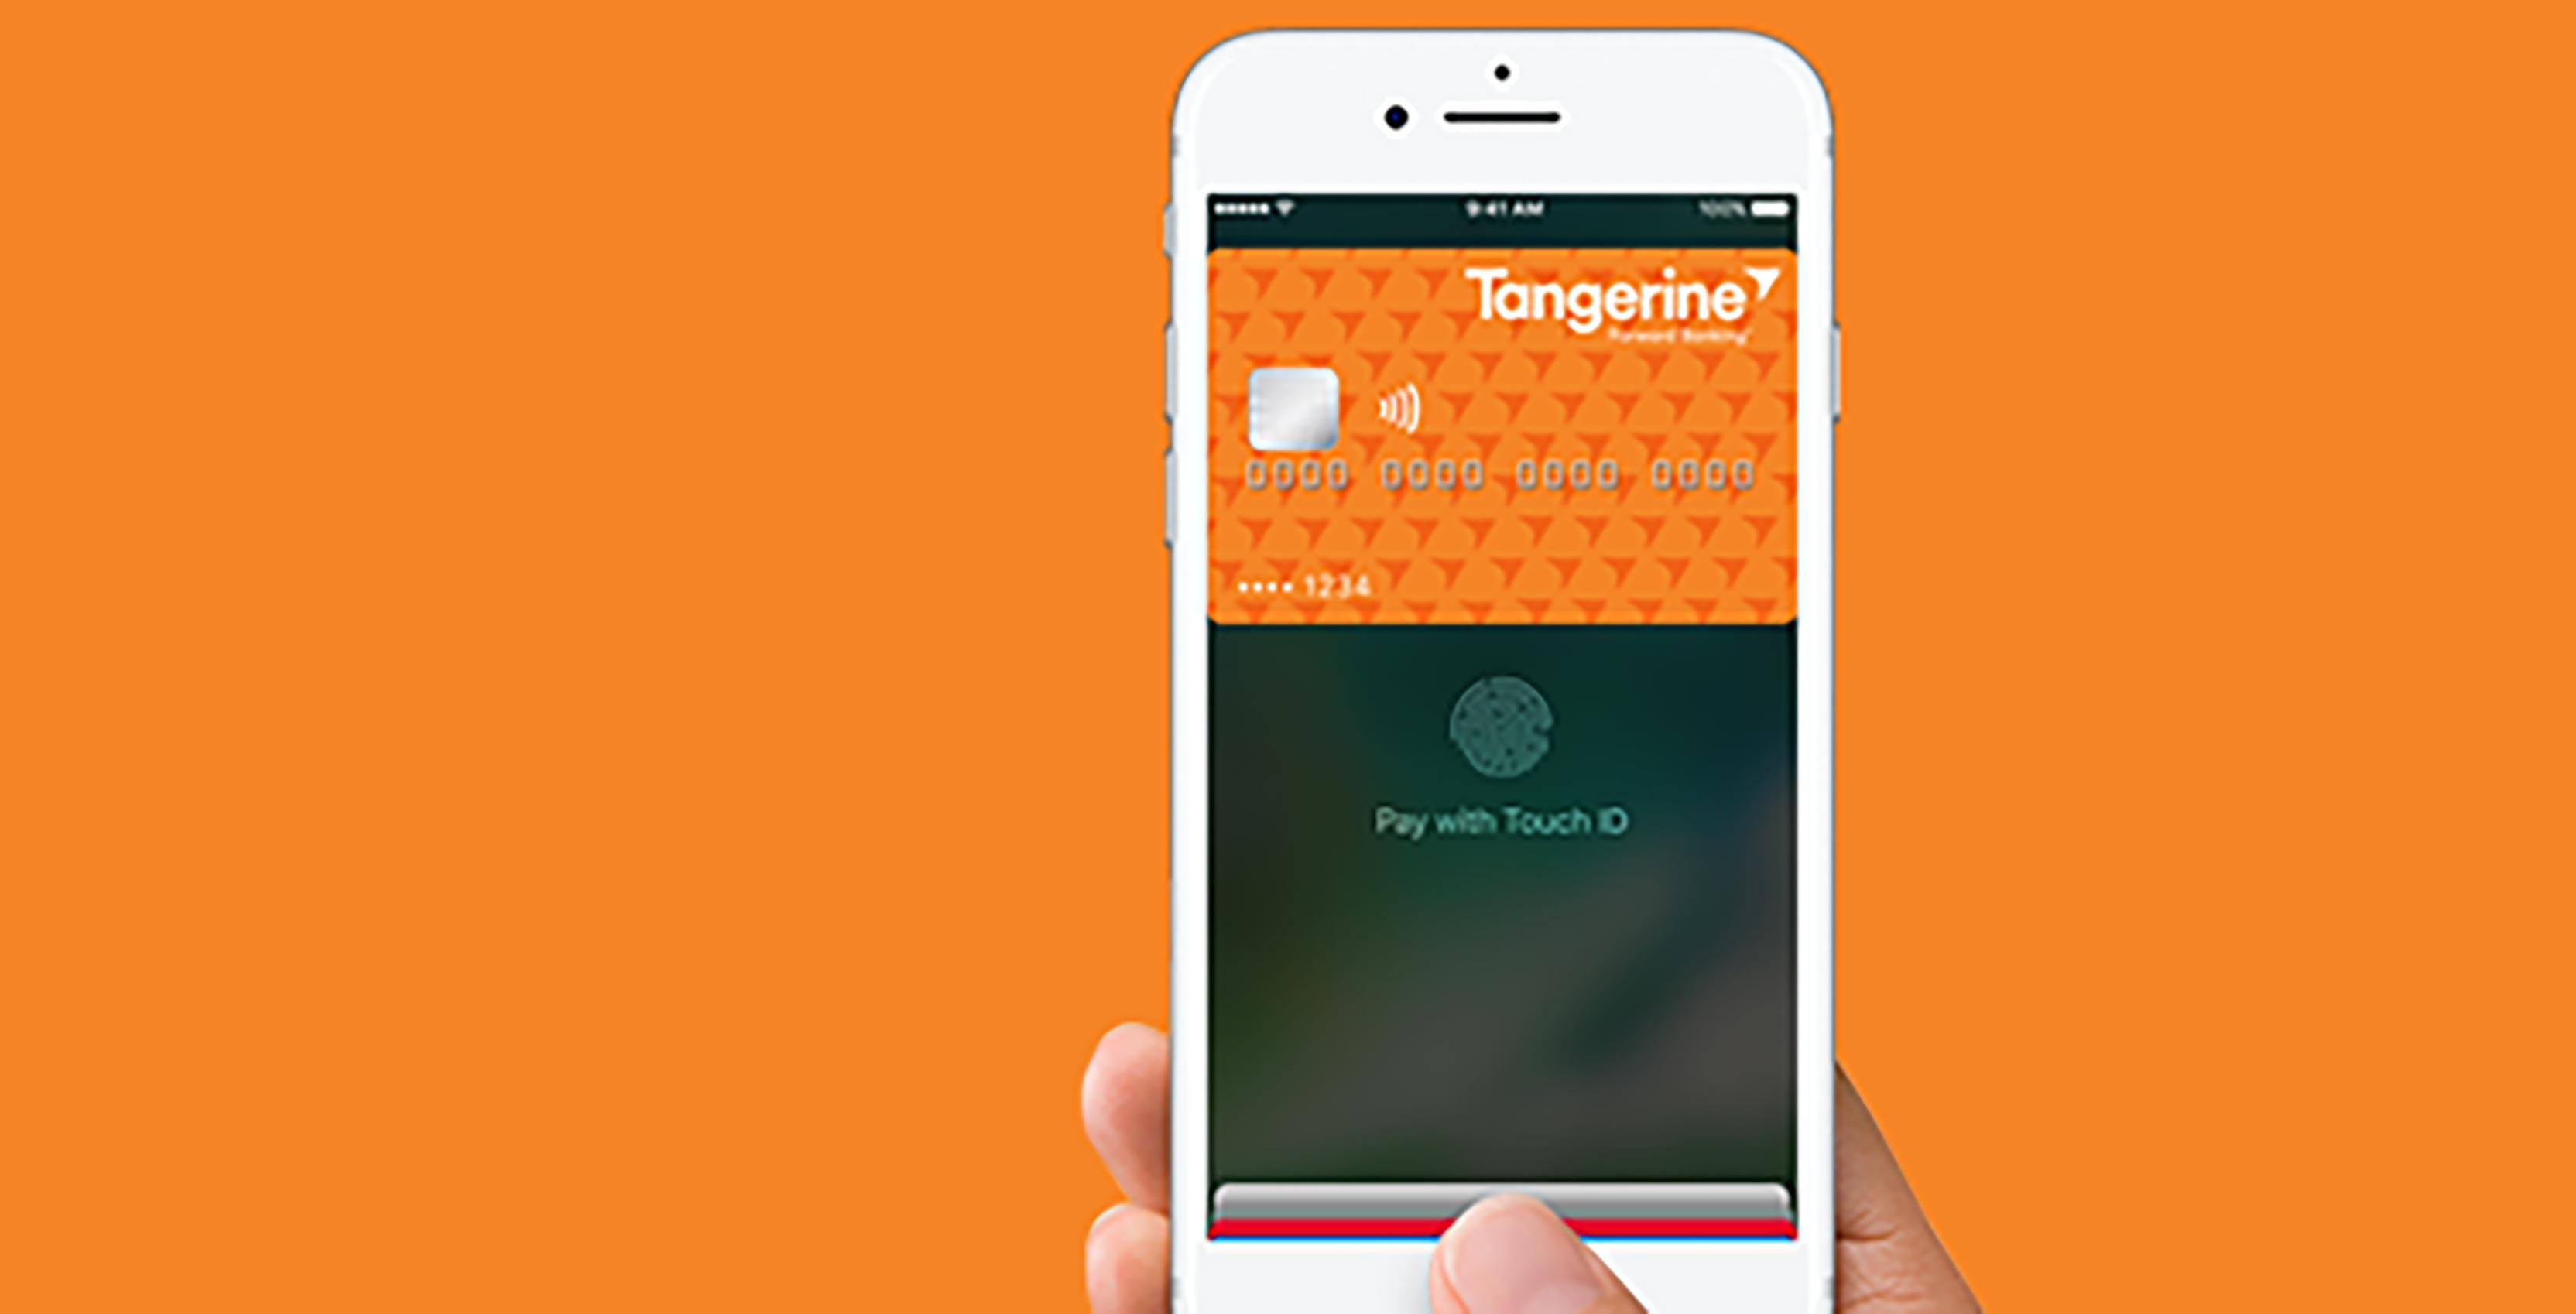 Tangerine Apple Pay on iPhone